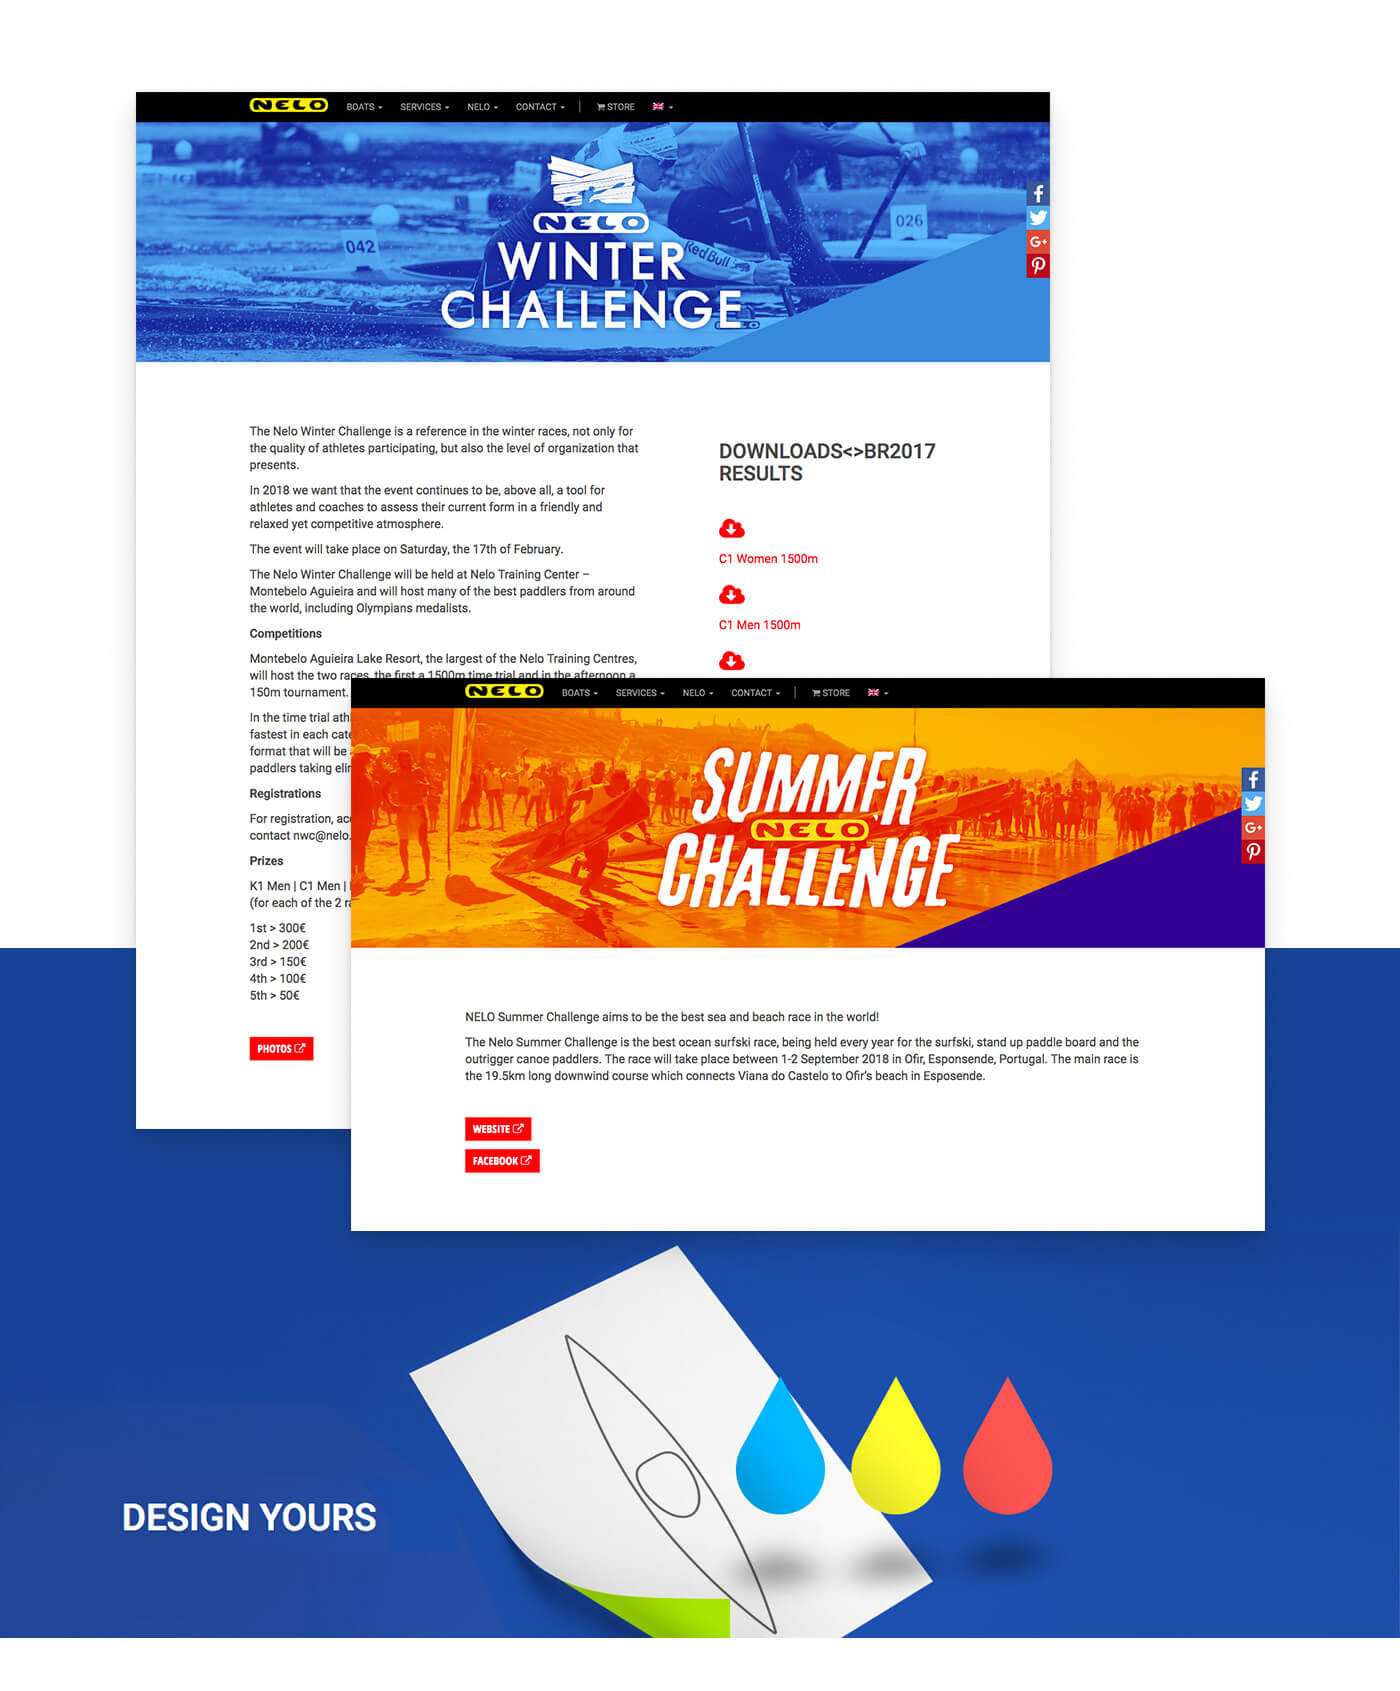 caiaques, barcos, desportos, branding, indústria, manufacture, factory, stationary, web design, video, marketing